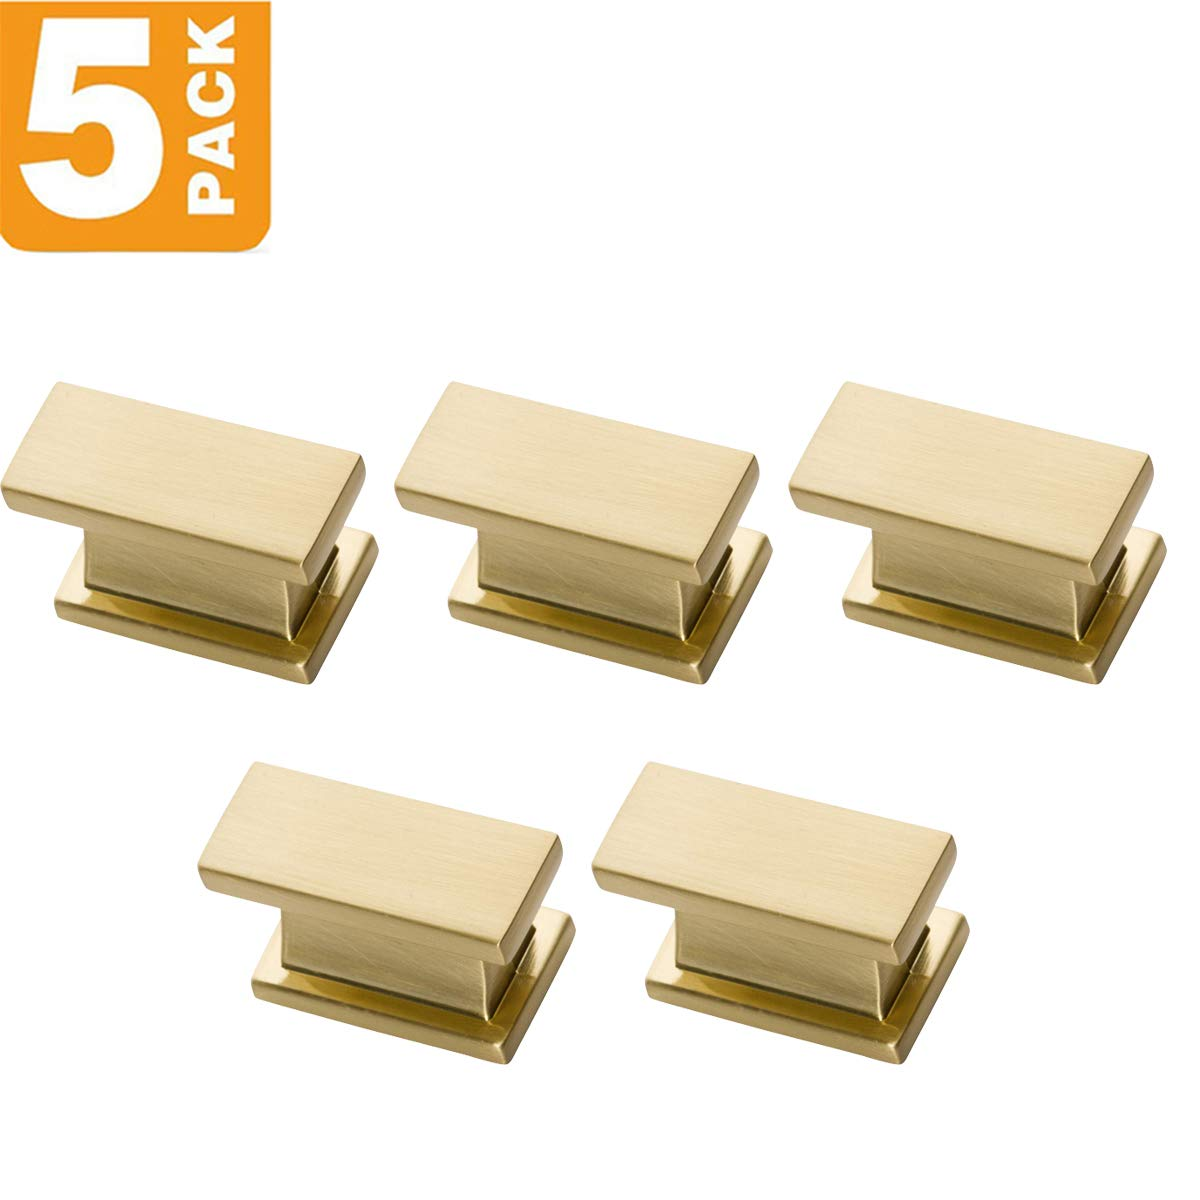 Southern Hills Satin Brass Cabinet Knobs - Rectangle - Pack of 5 - Brushed Brass Kitchen Cabinet Knobs - Cabinet Hardware Pulls - SHKM001-BRS-5 by Southern Hills (Image #2)